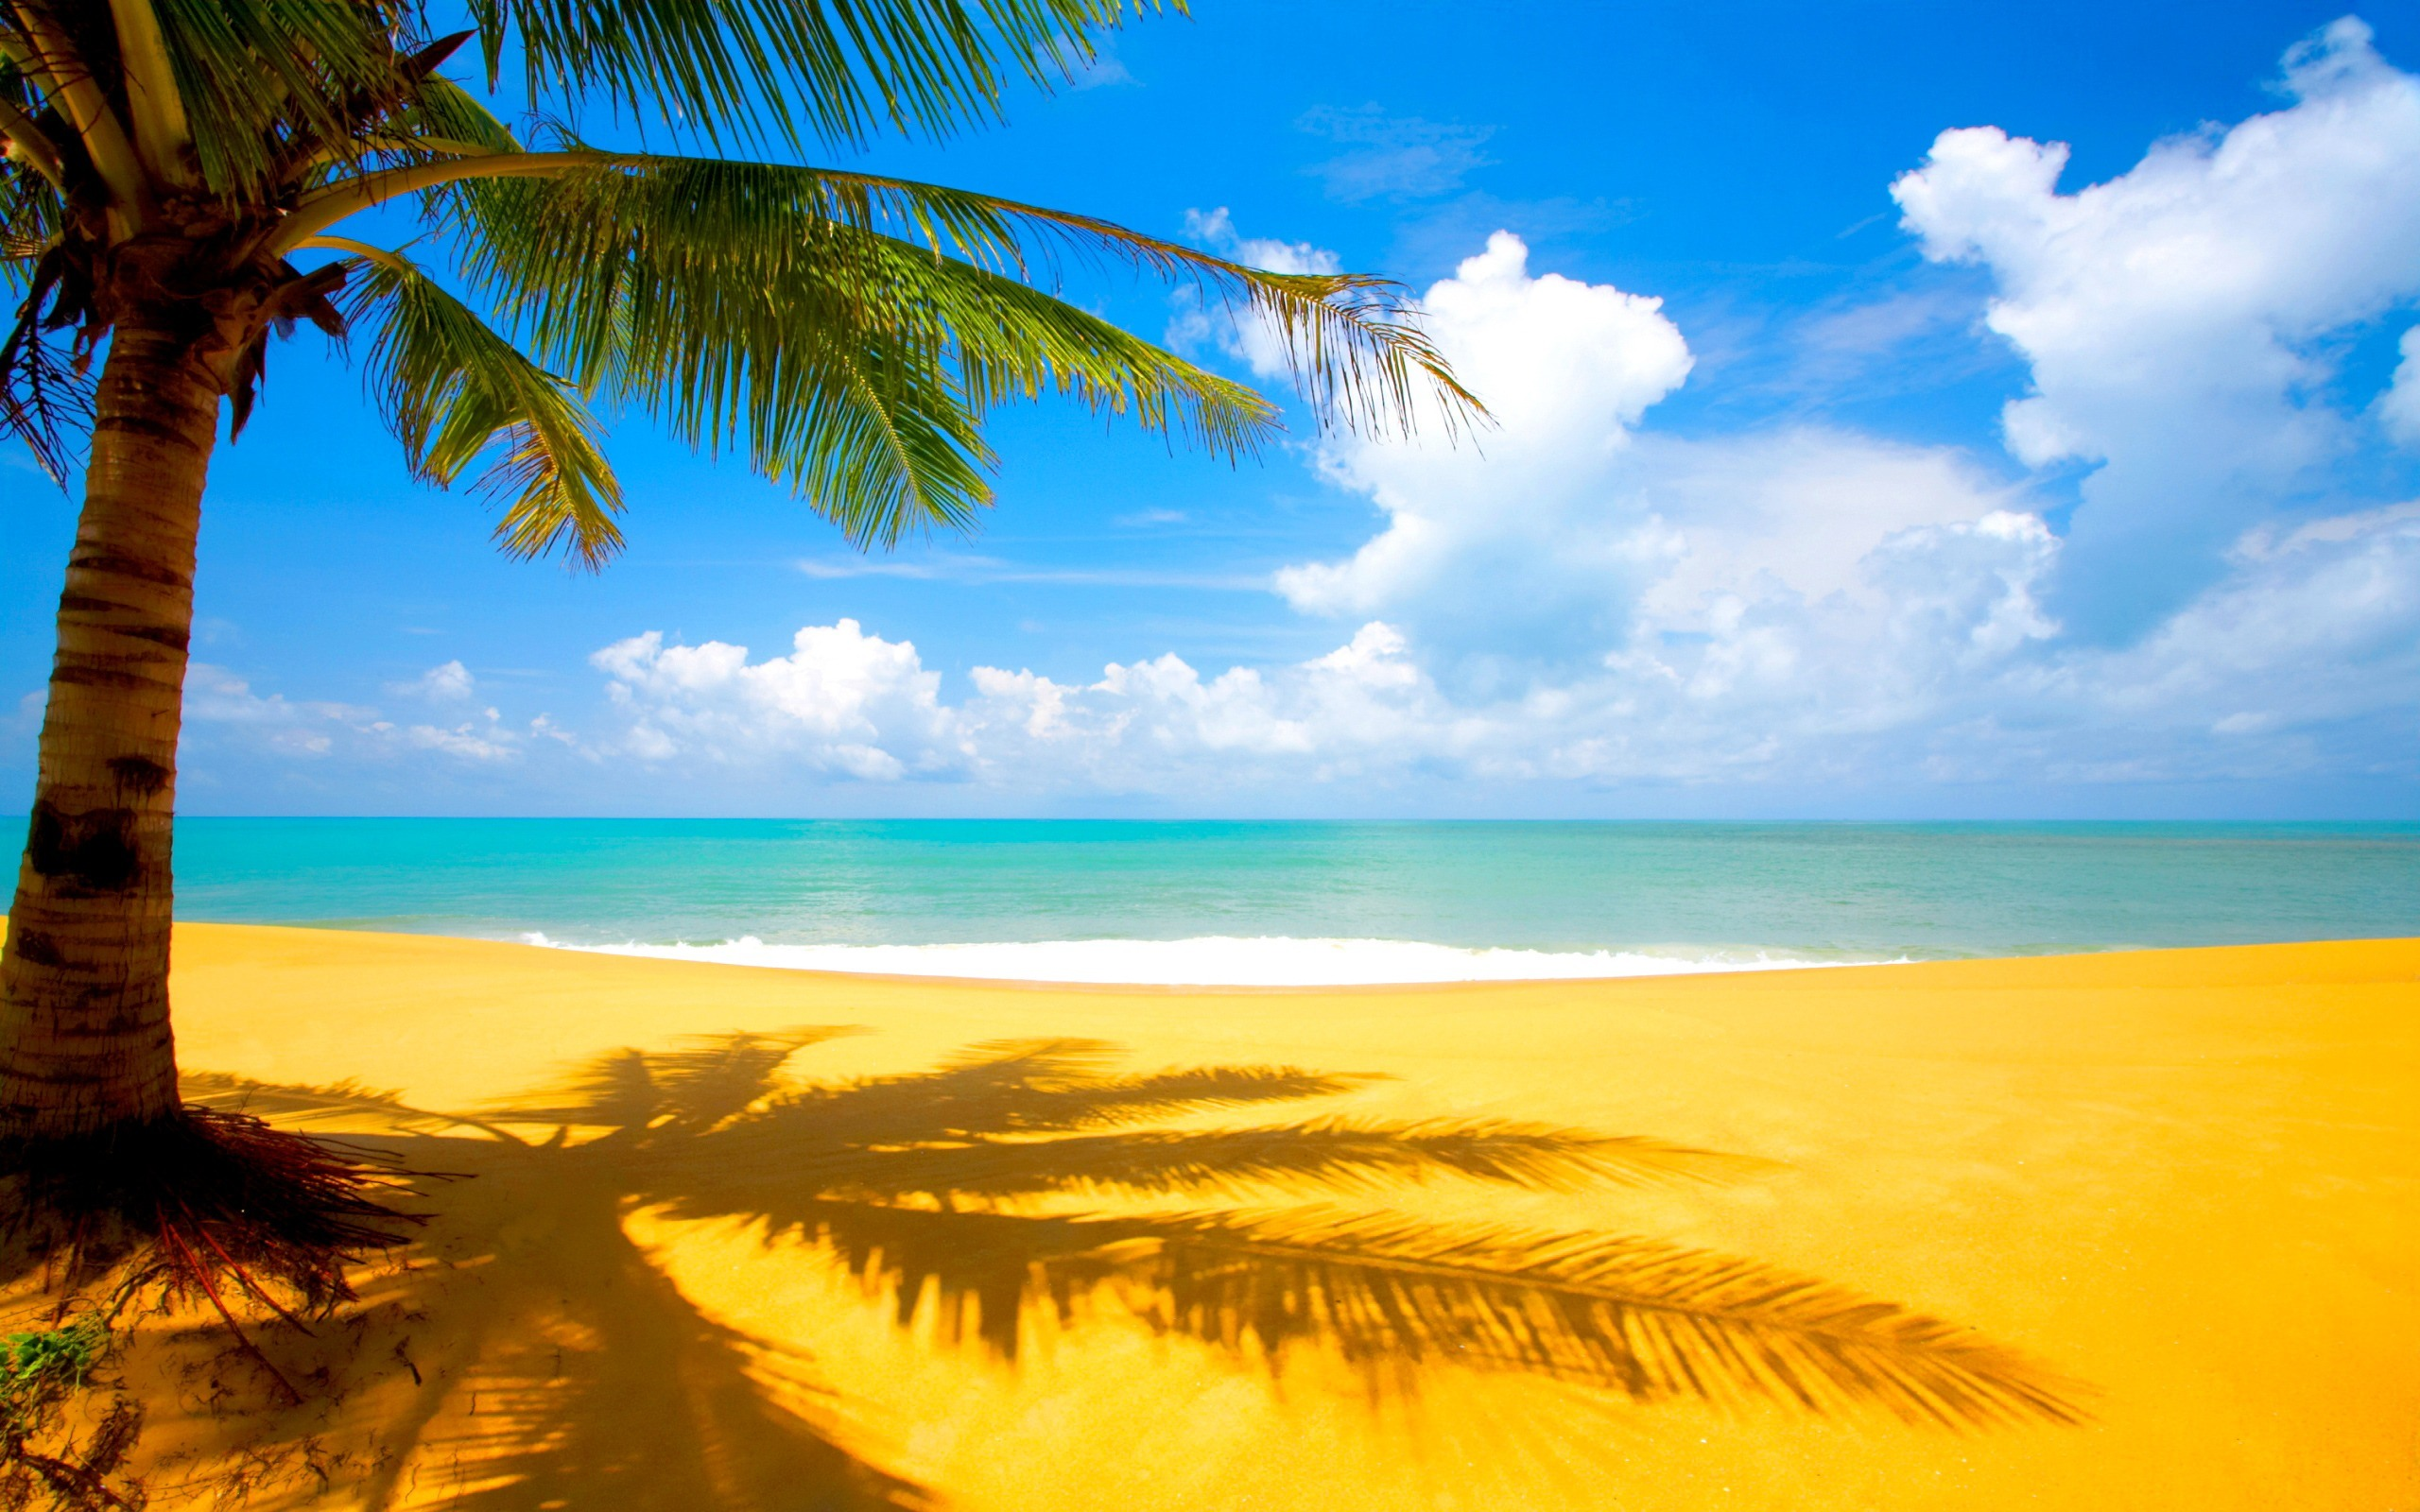 pin jamaica beach desktop wallpapers on pinterest